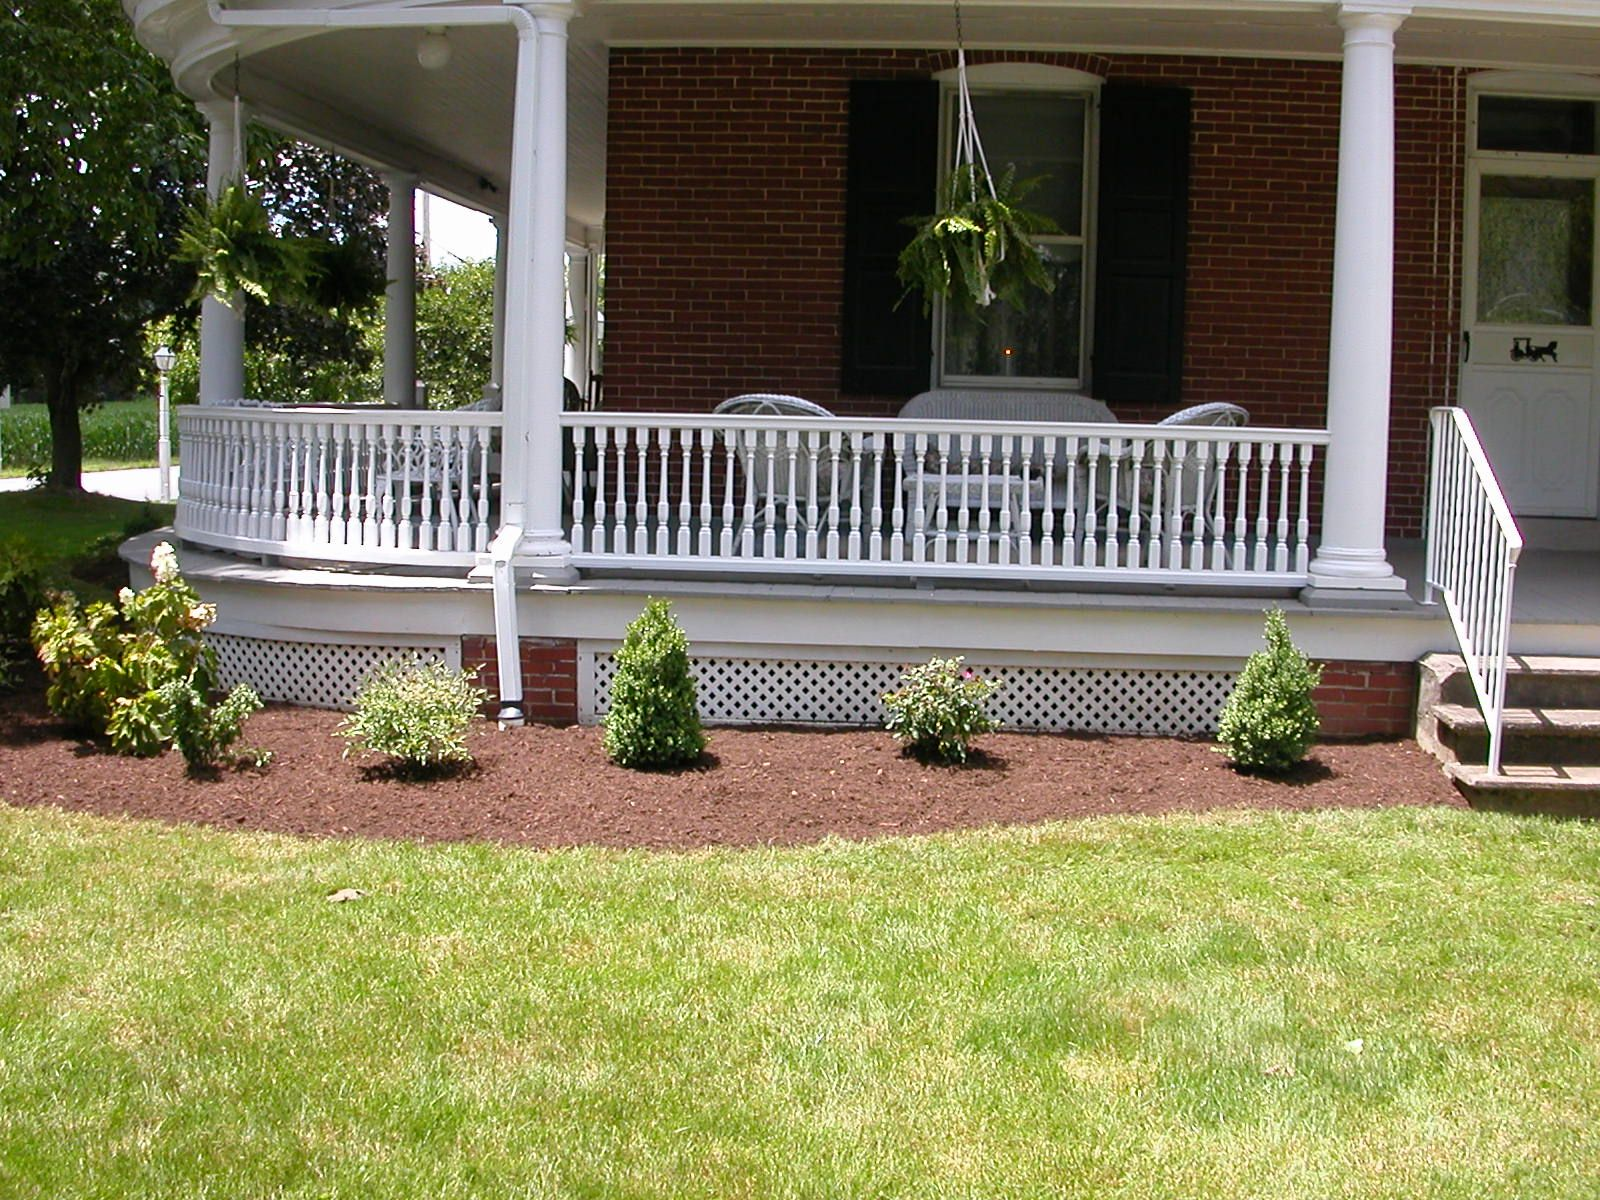 Landscaping ideas for wrap around porches our new for Rap around porch